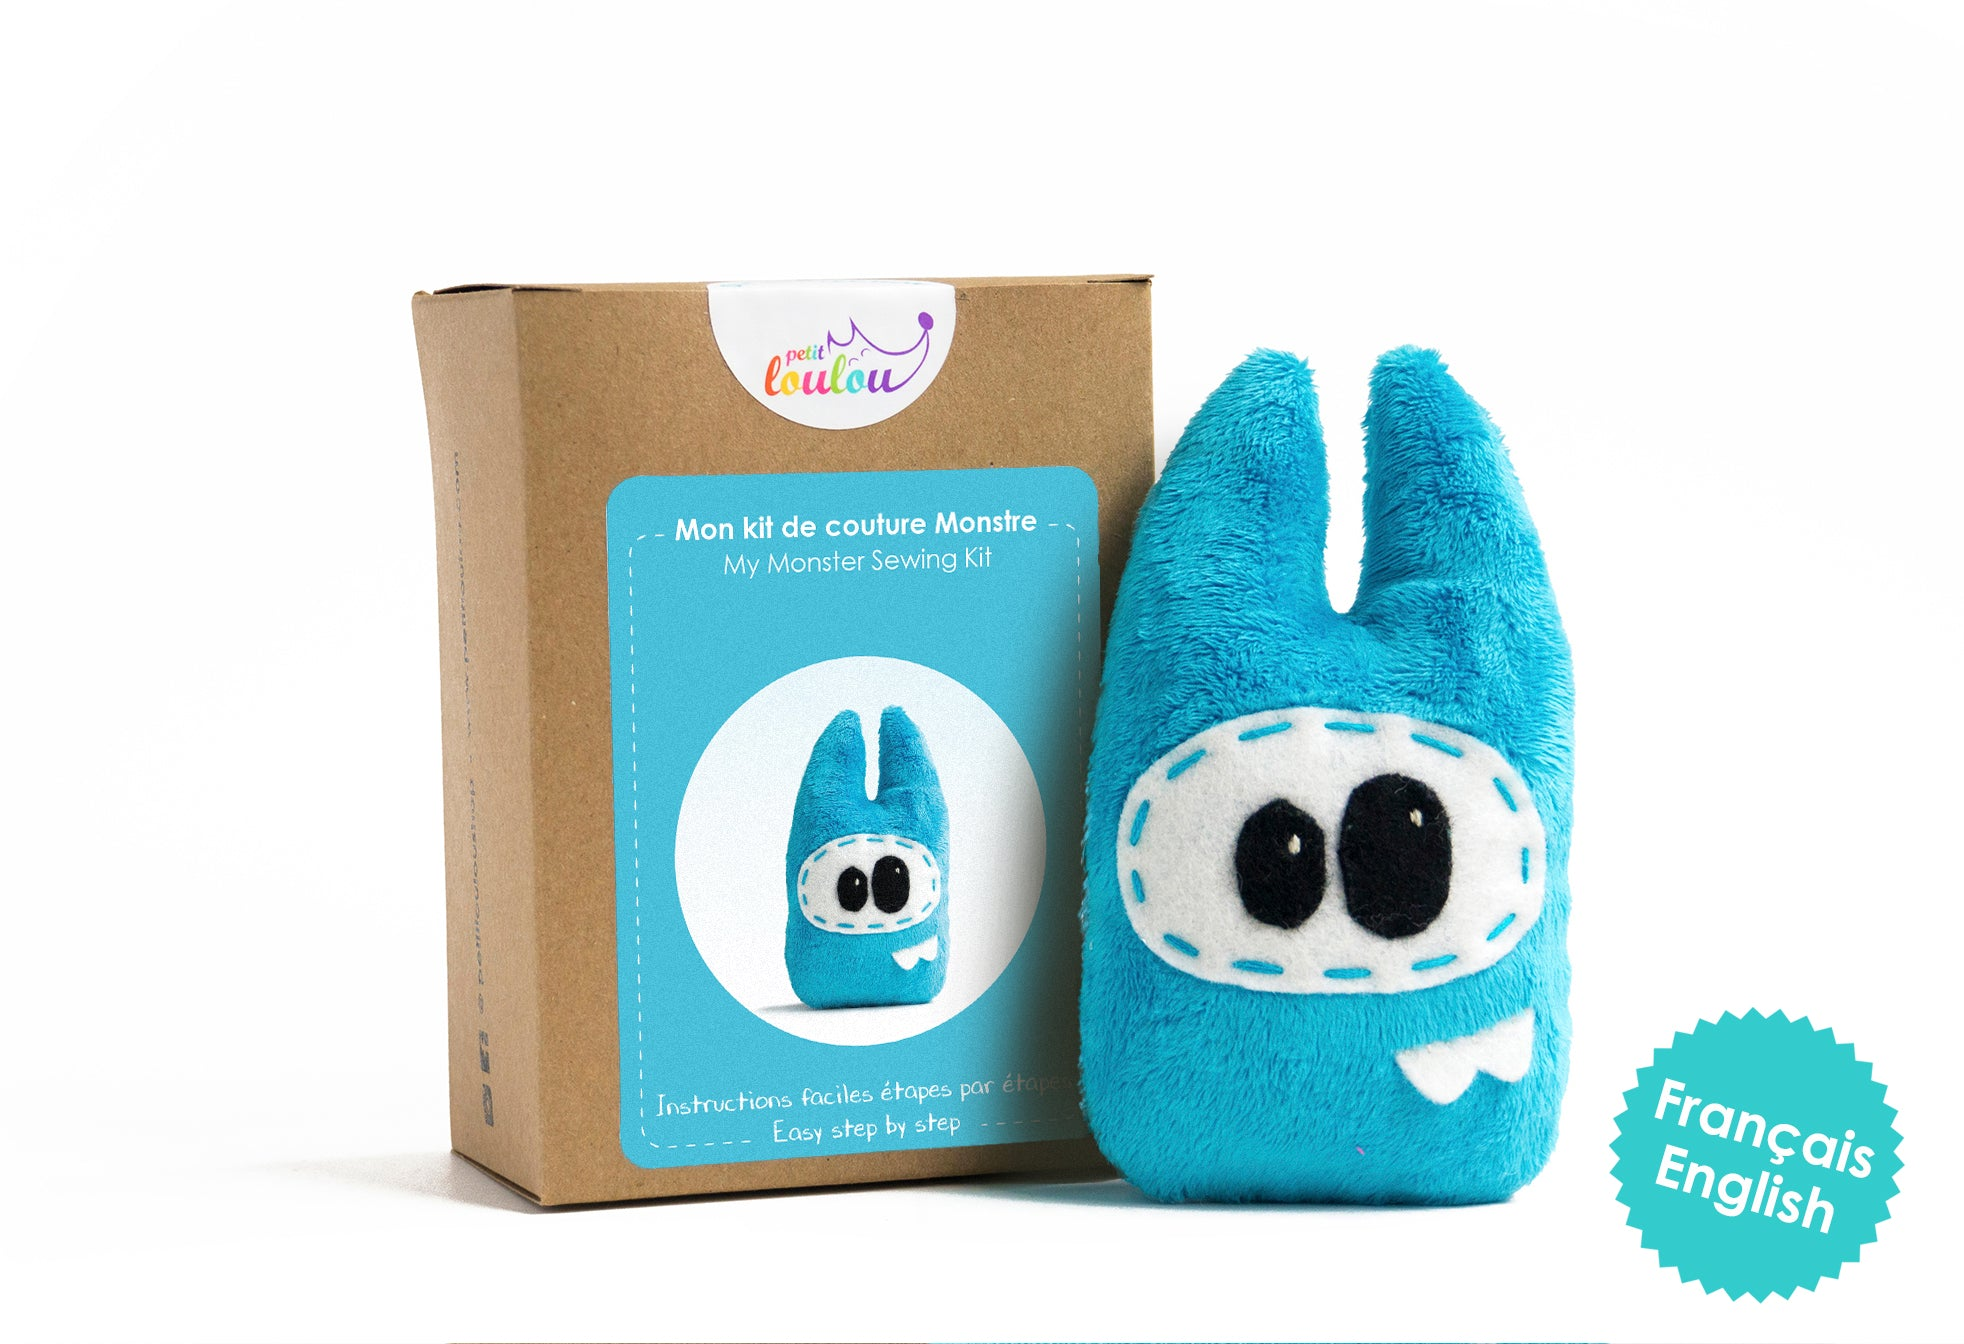 Make Your Own Monster - A DIY plush monster kit - Blue